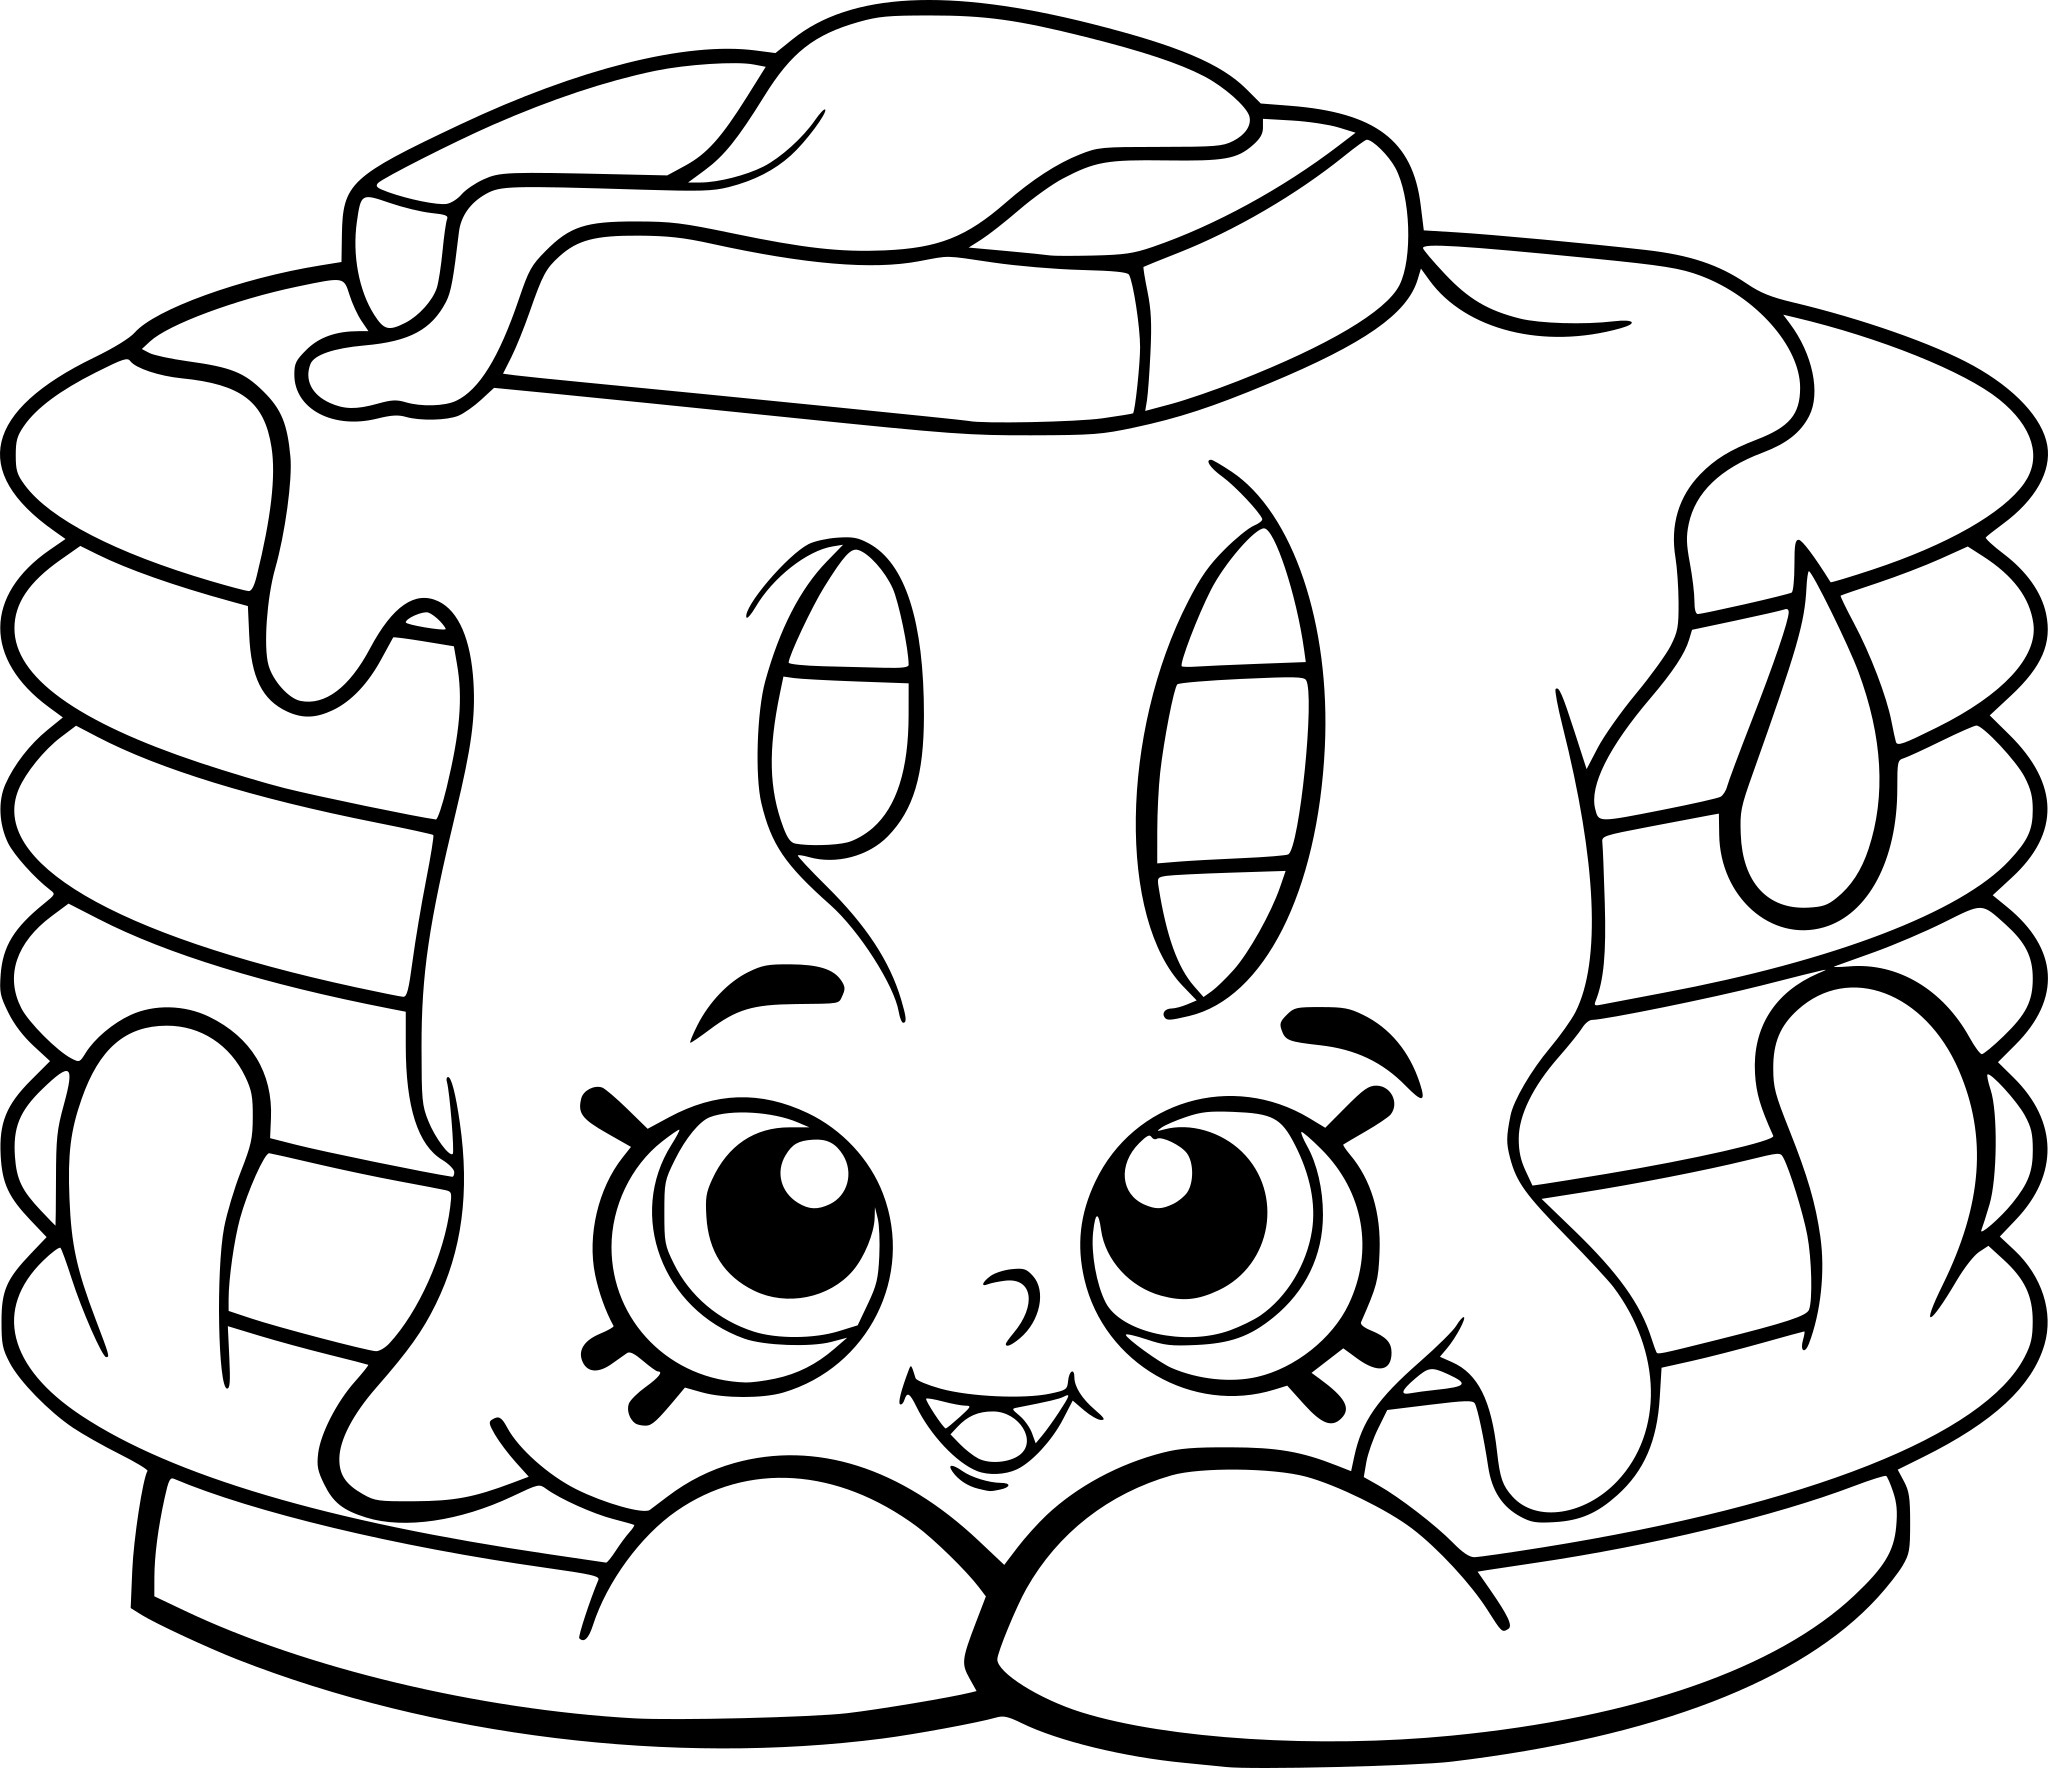 Free Printable Shopkins Coloring Pages - Coloring Pages For Kids - Shopkins Coloring Pages Free Printable